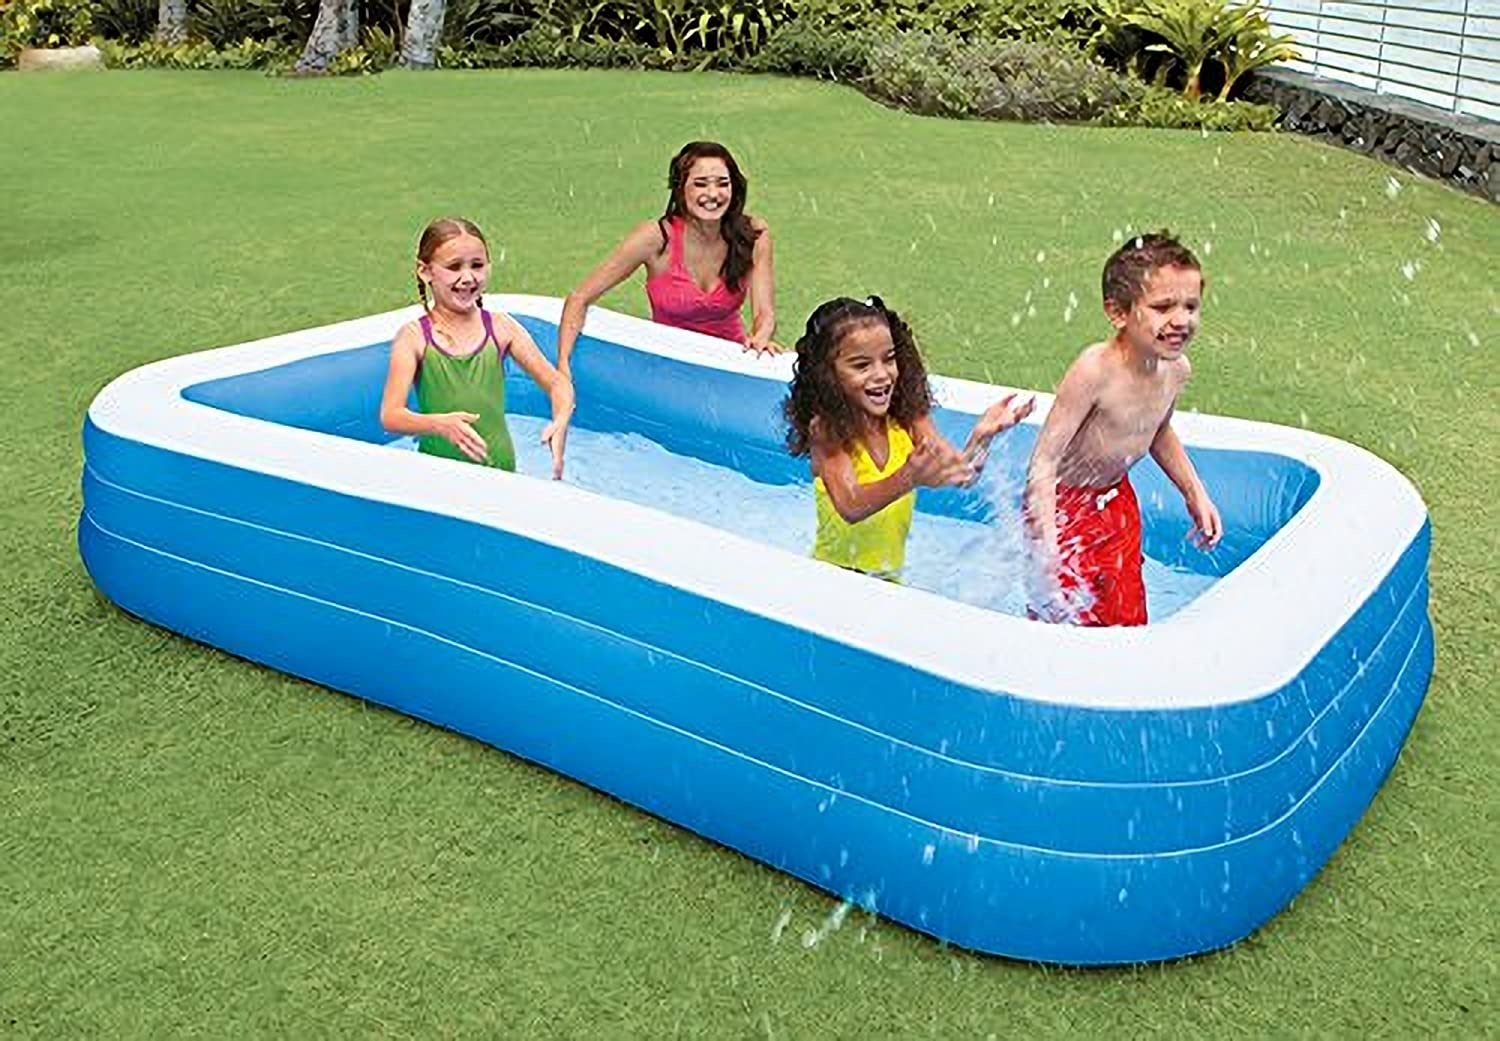 amazoncom intex swim center family inflatable pool 120 x 72 x 22 for ages 6 toys games - Rectangle Inflatable Pool